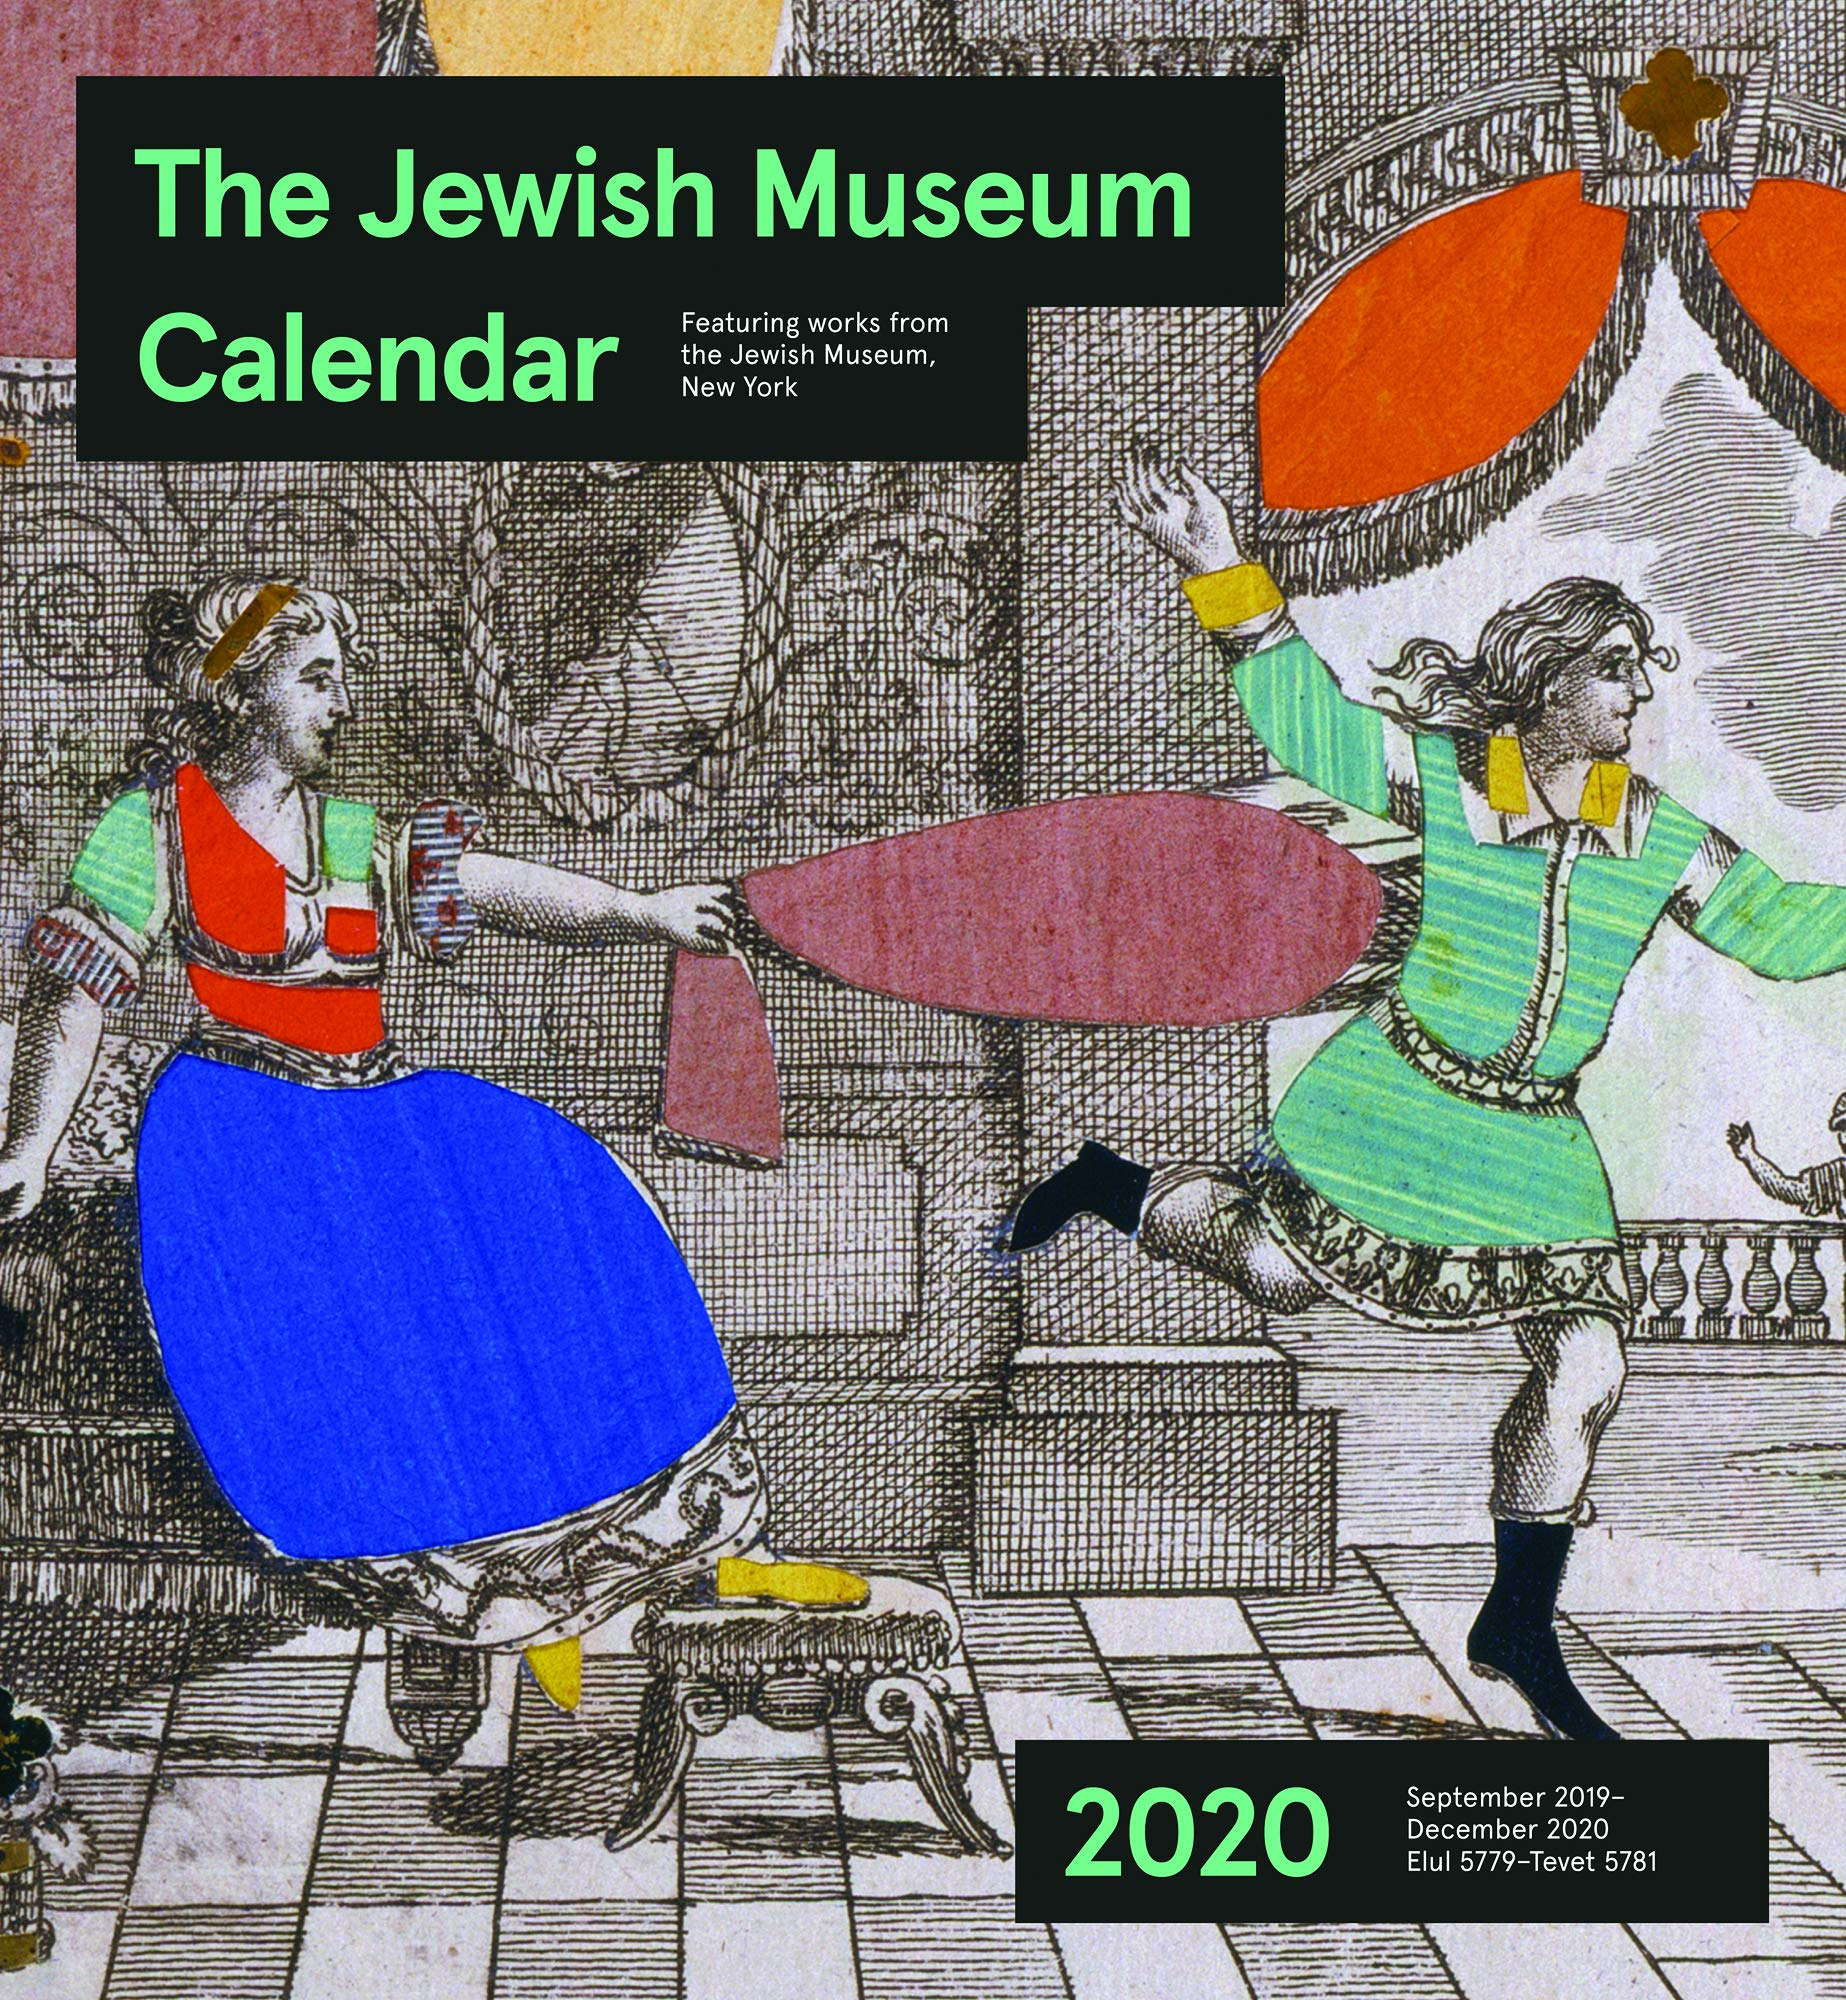 Suny Purchase Calendar 2020 The Jewish Museum Calendar 2020 Wall Calendar: The Jewish Museum